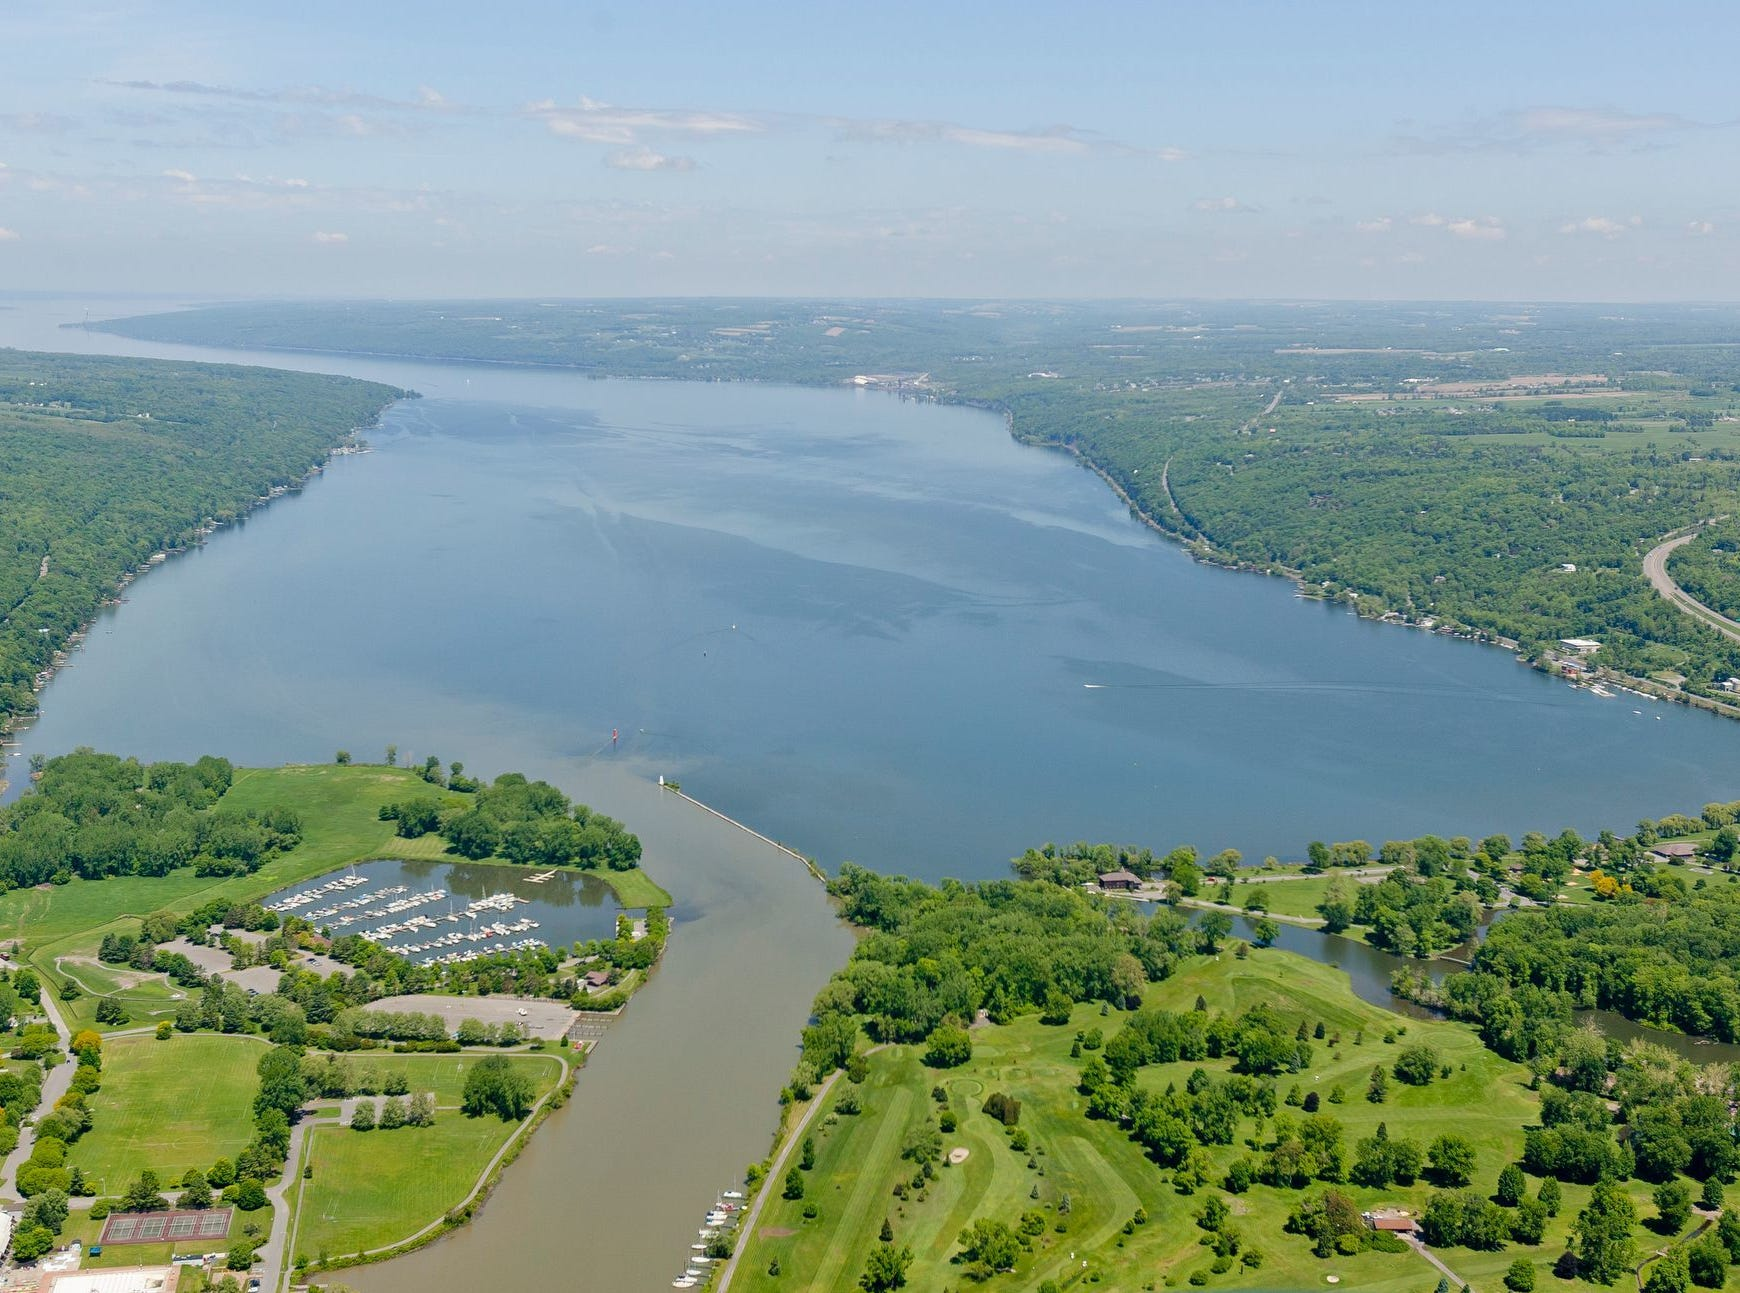 Toxic algae is invading our lakes and lack of transparency makes it difficult to track